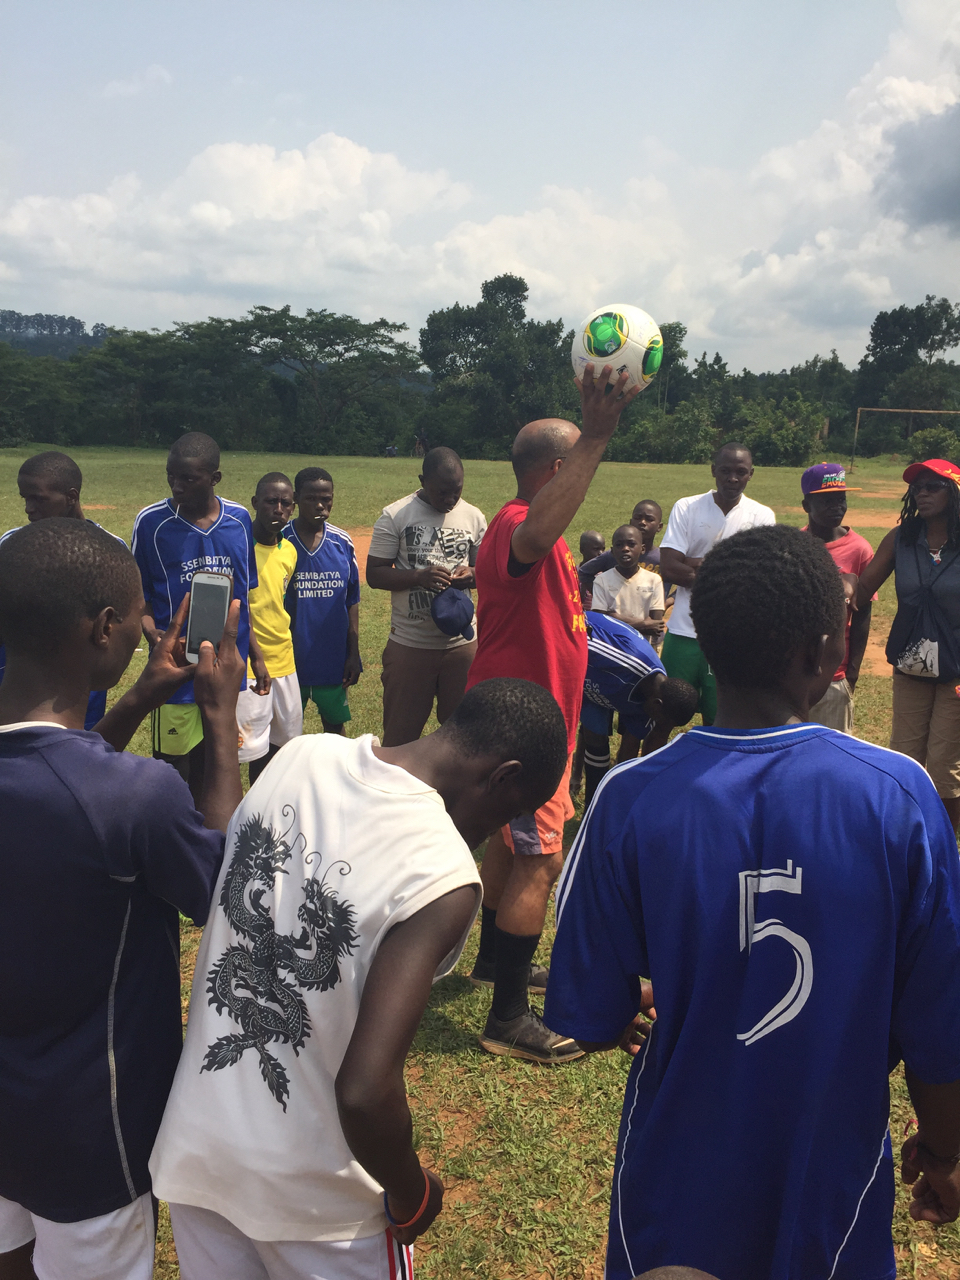 Pre-game instructions from Makinto—Team Rangers from Uganda vs. Team Joyful!